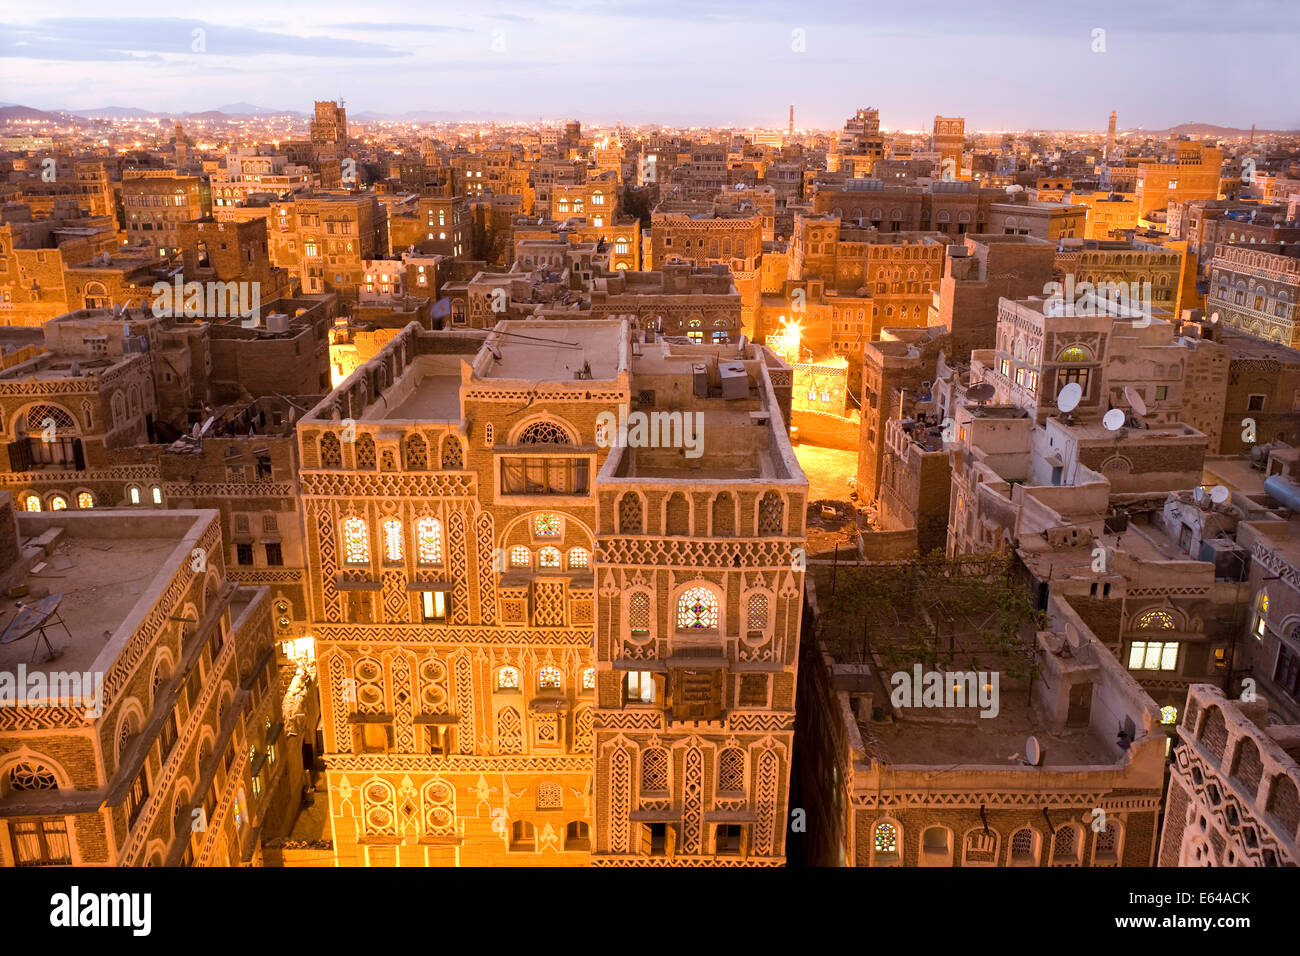 Dusk view of the cityscape of Sana'a, Yemen - Stock Image